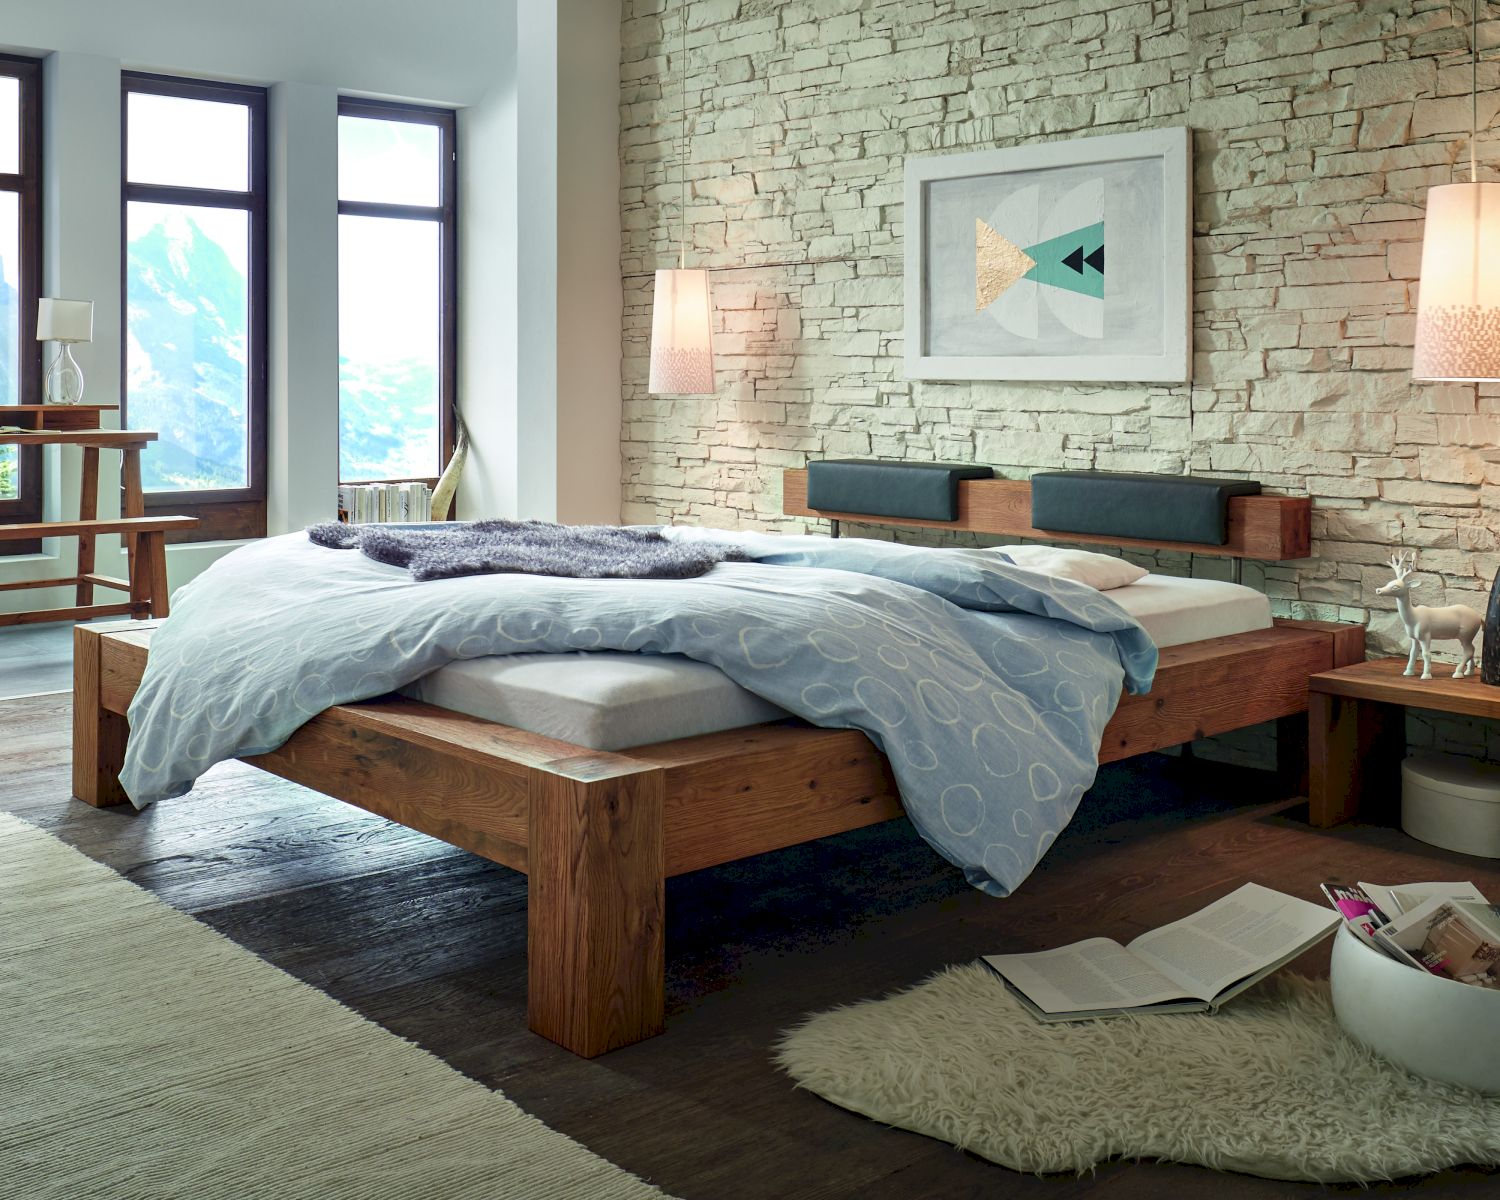 hasena oak line wild bett bormio cobobalco. Black Bedroom Furniture Sets. Home Design Ideas